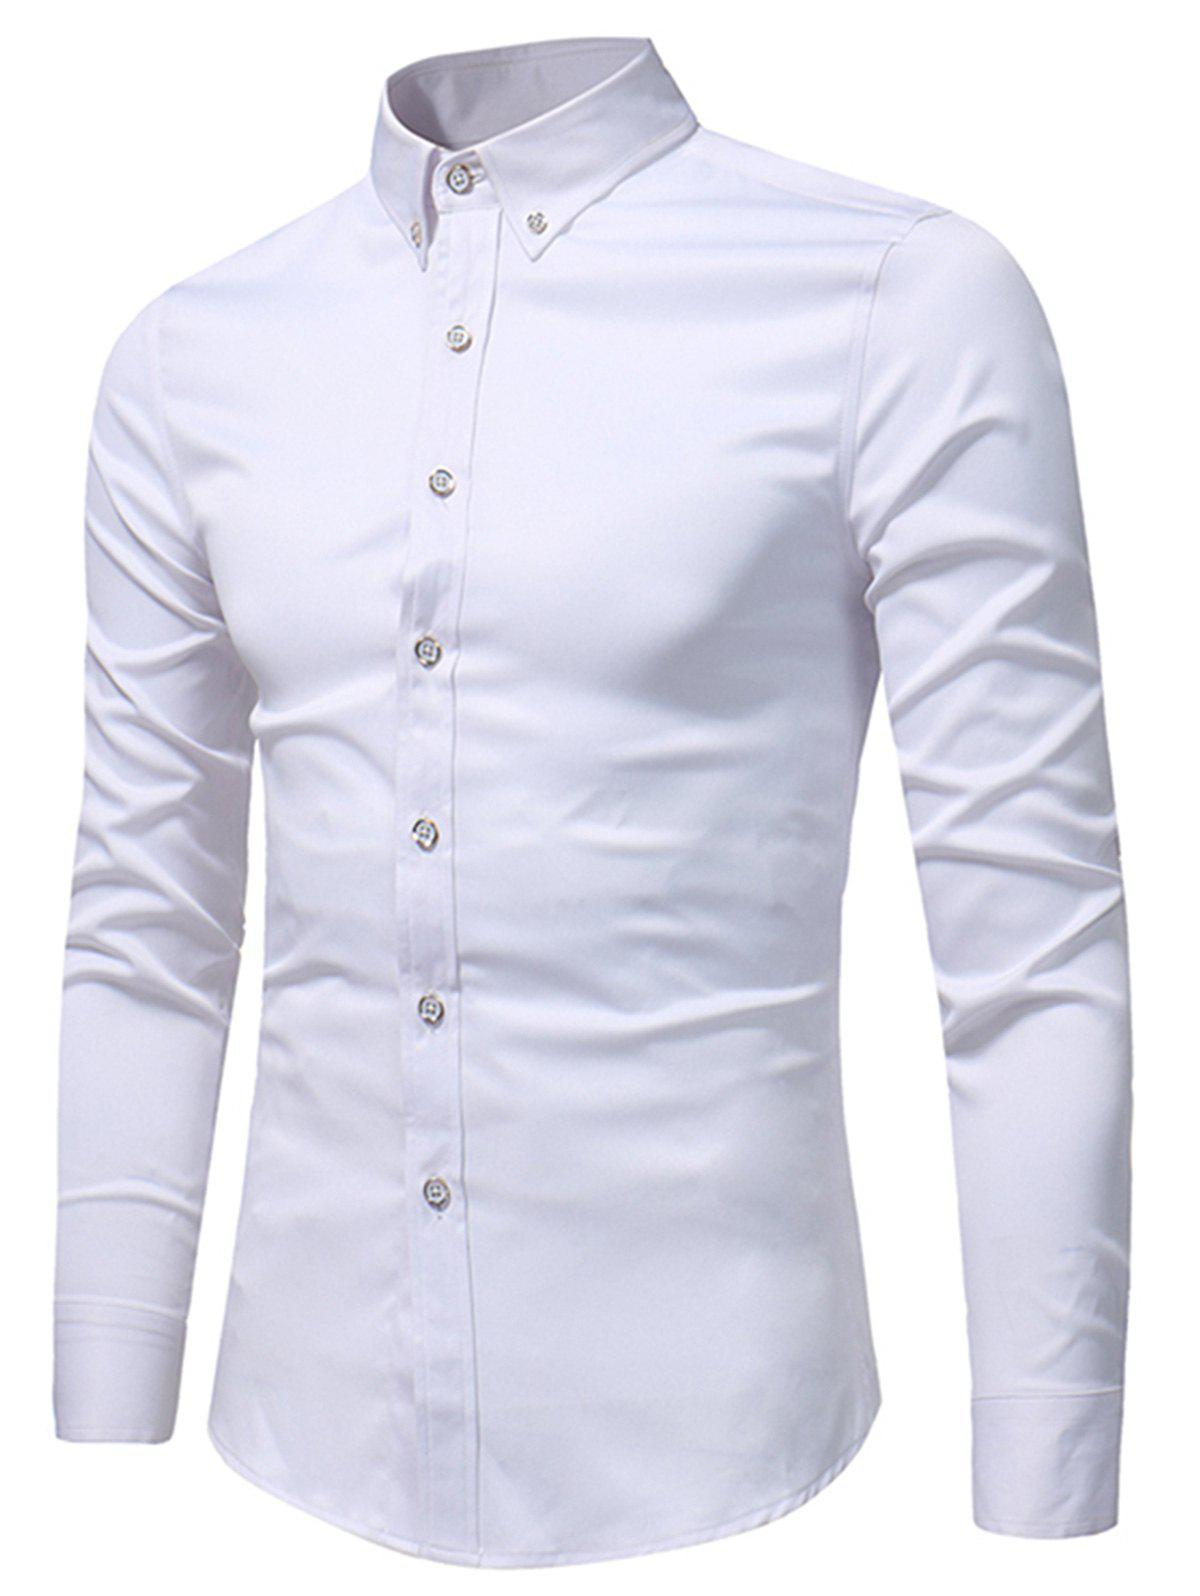 2018 slim fit button down long sleeve shirt white xl in for Slim fit white button down shirt